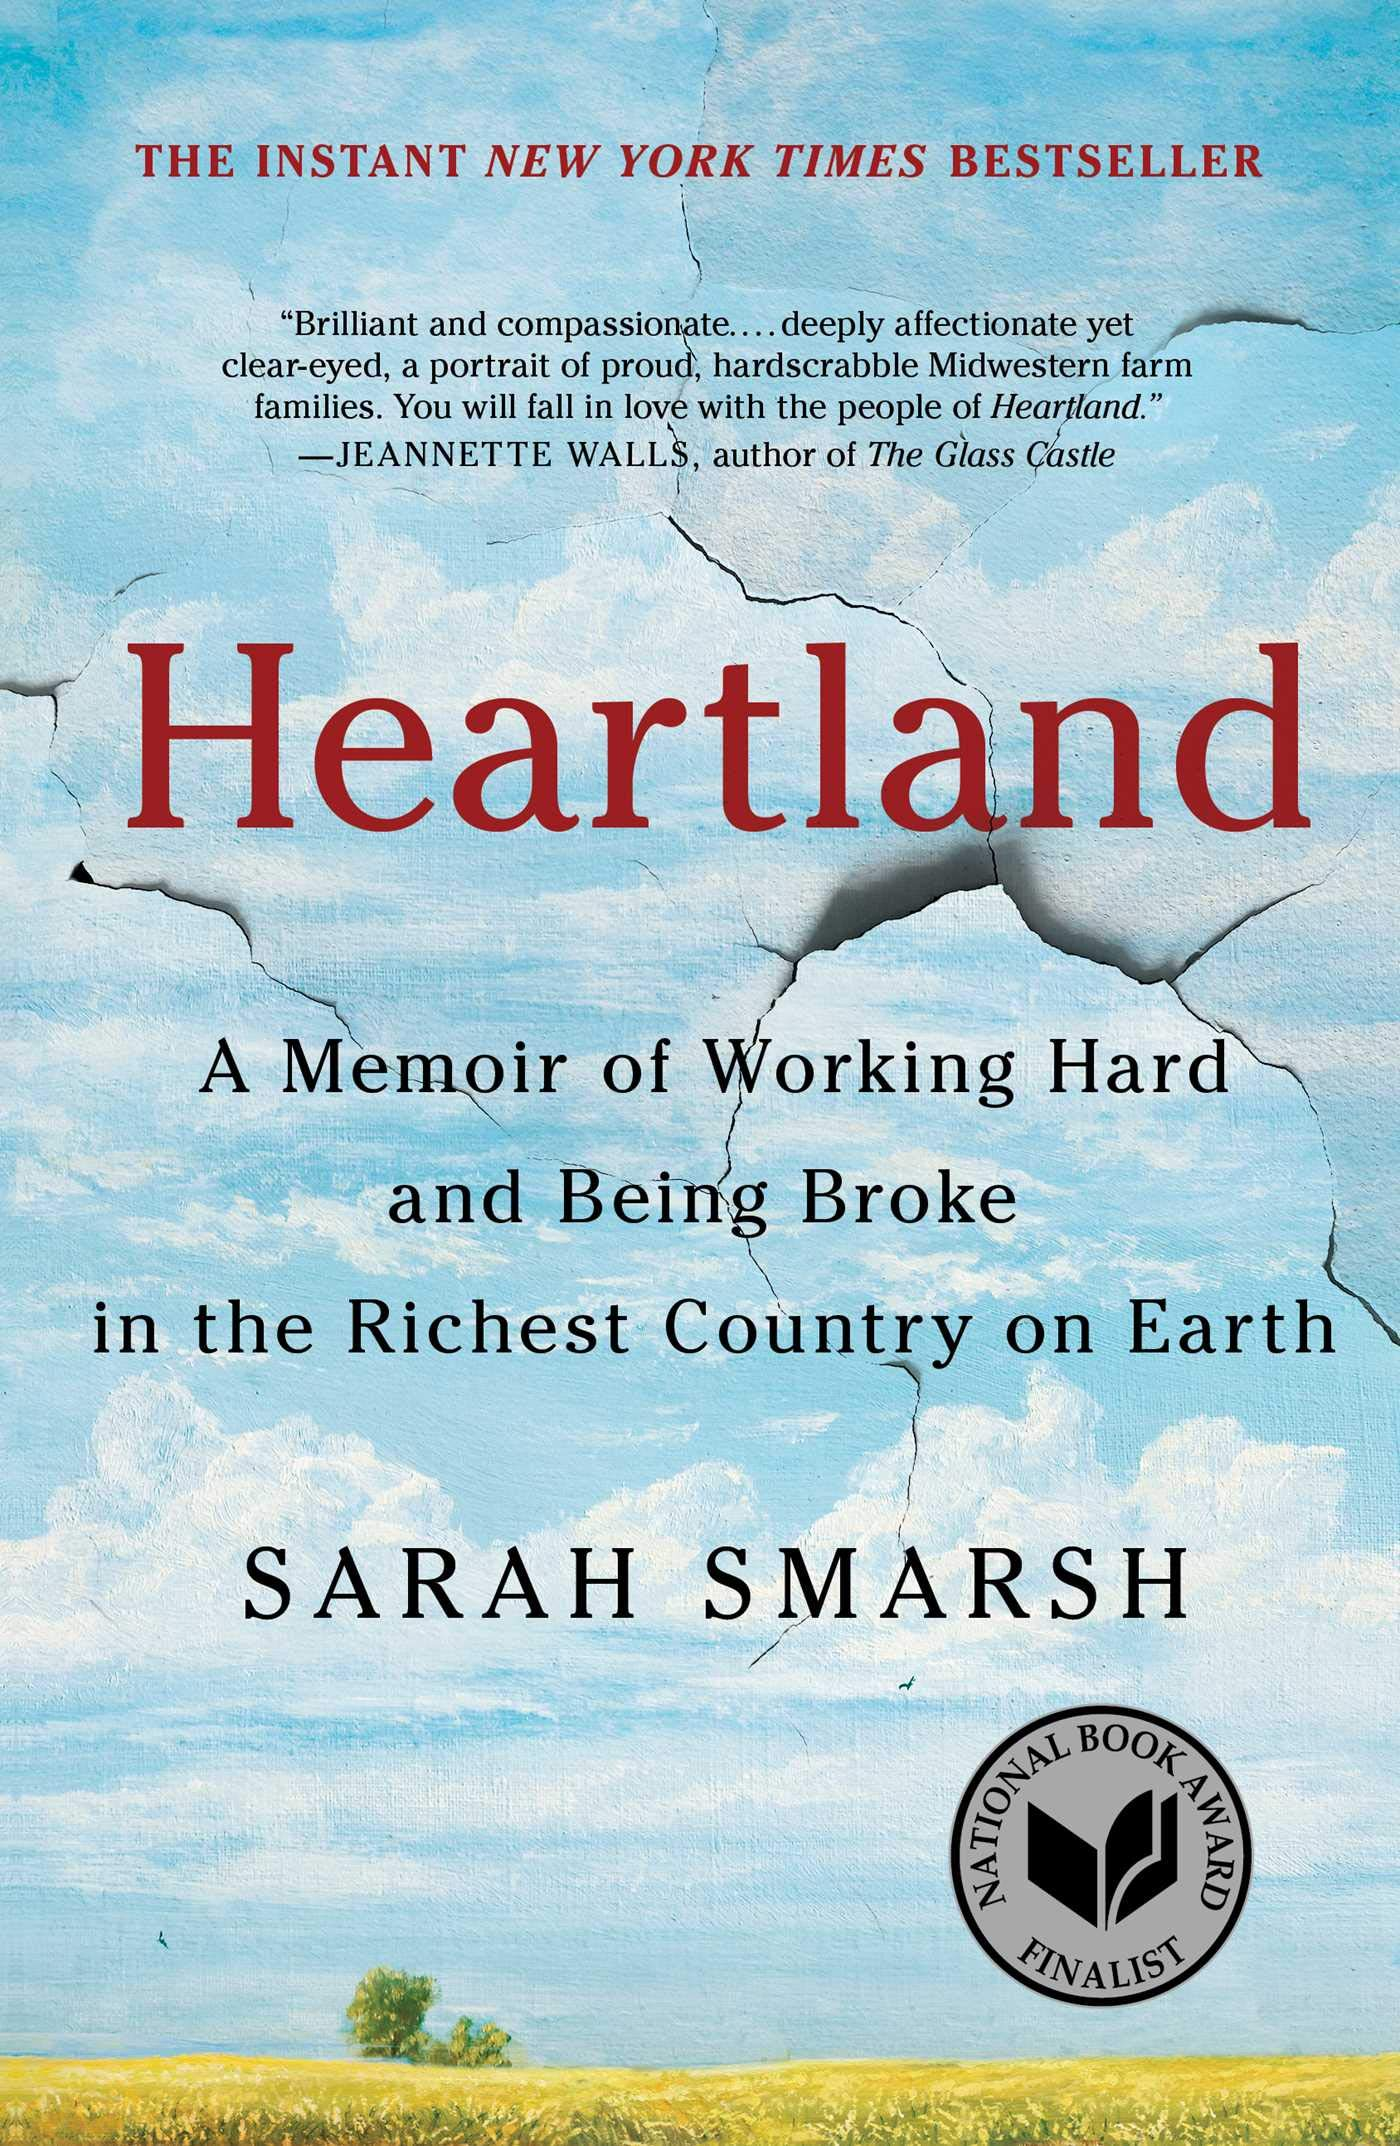 Book cover of Heartland: A Memoir of Working Hard and Being Broke in the Richest Country on Earth by Sarah Smarsh.